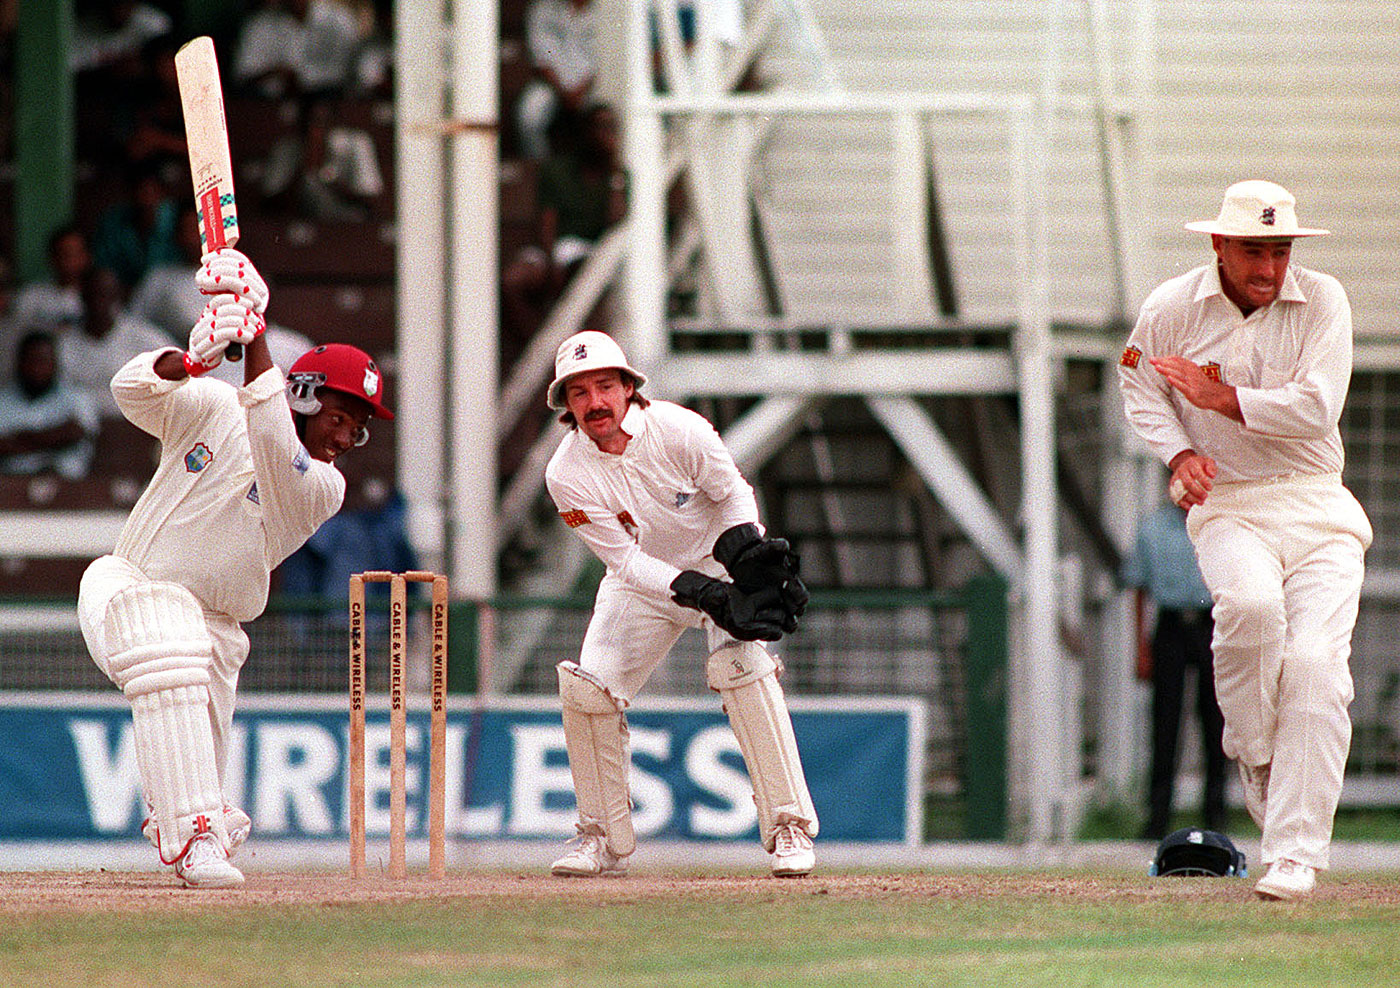 One of the England bowlers feared the world record was coming when Lara began to go ballistic. He was right